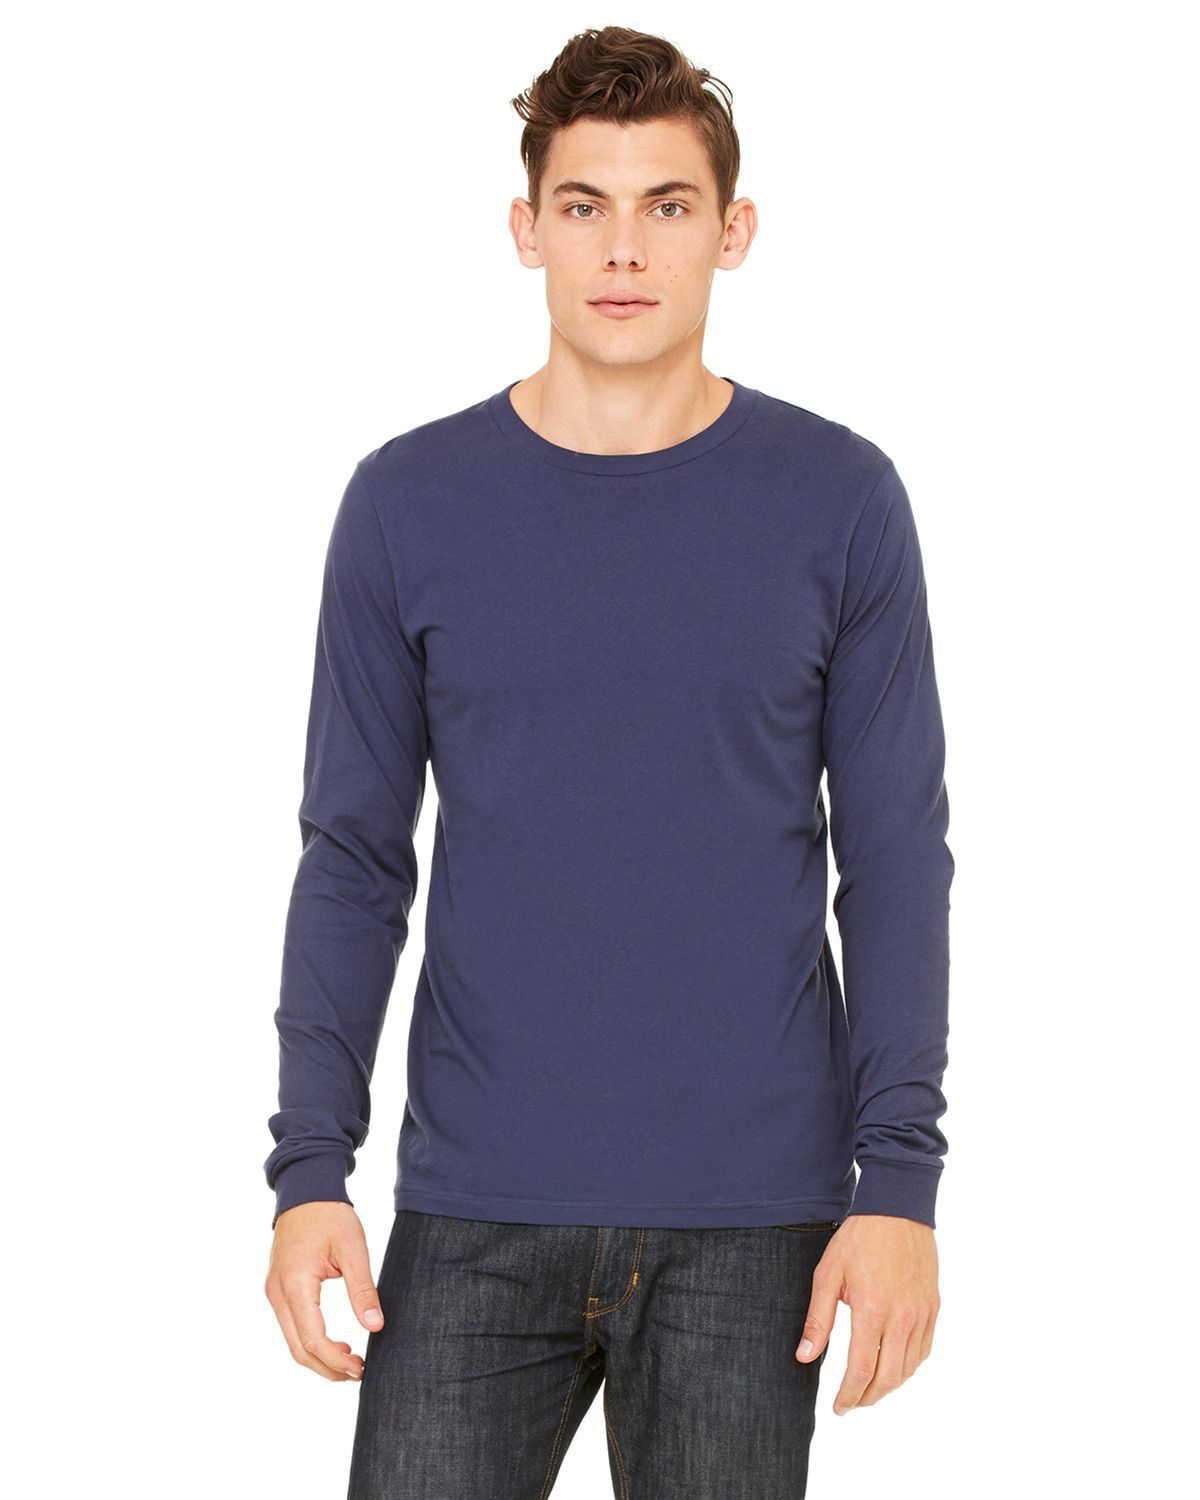 Bella + Canvas 3501 Men's Jersey Long-Sleeve T-Shirt - Navy - XS from Bella + Canvas